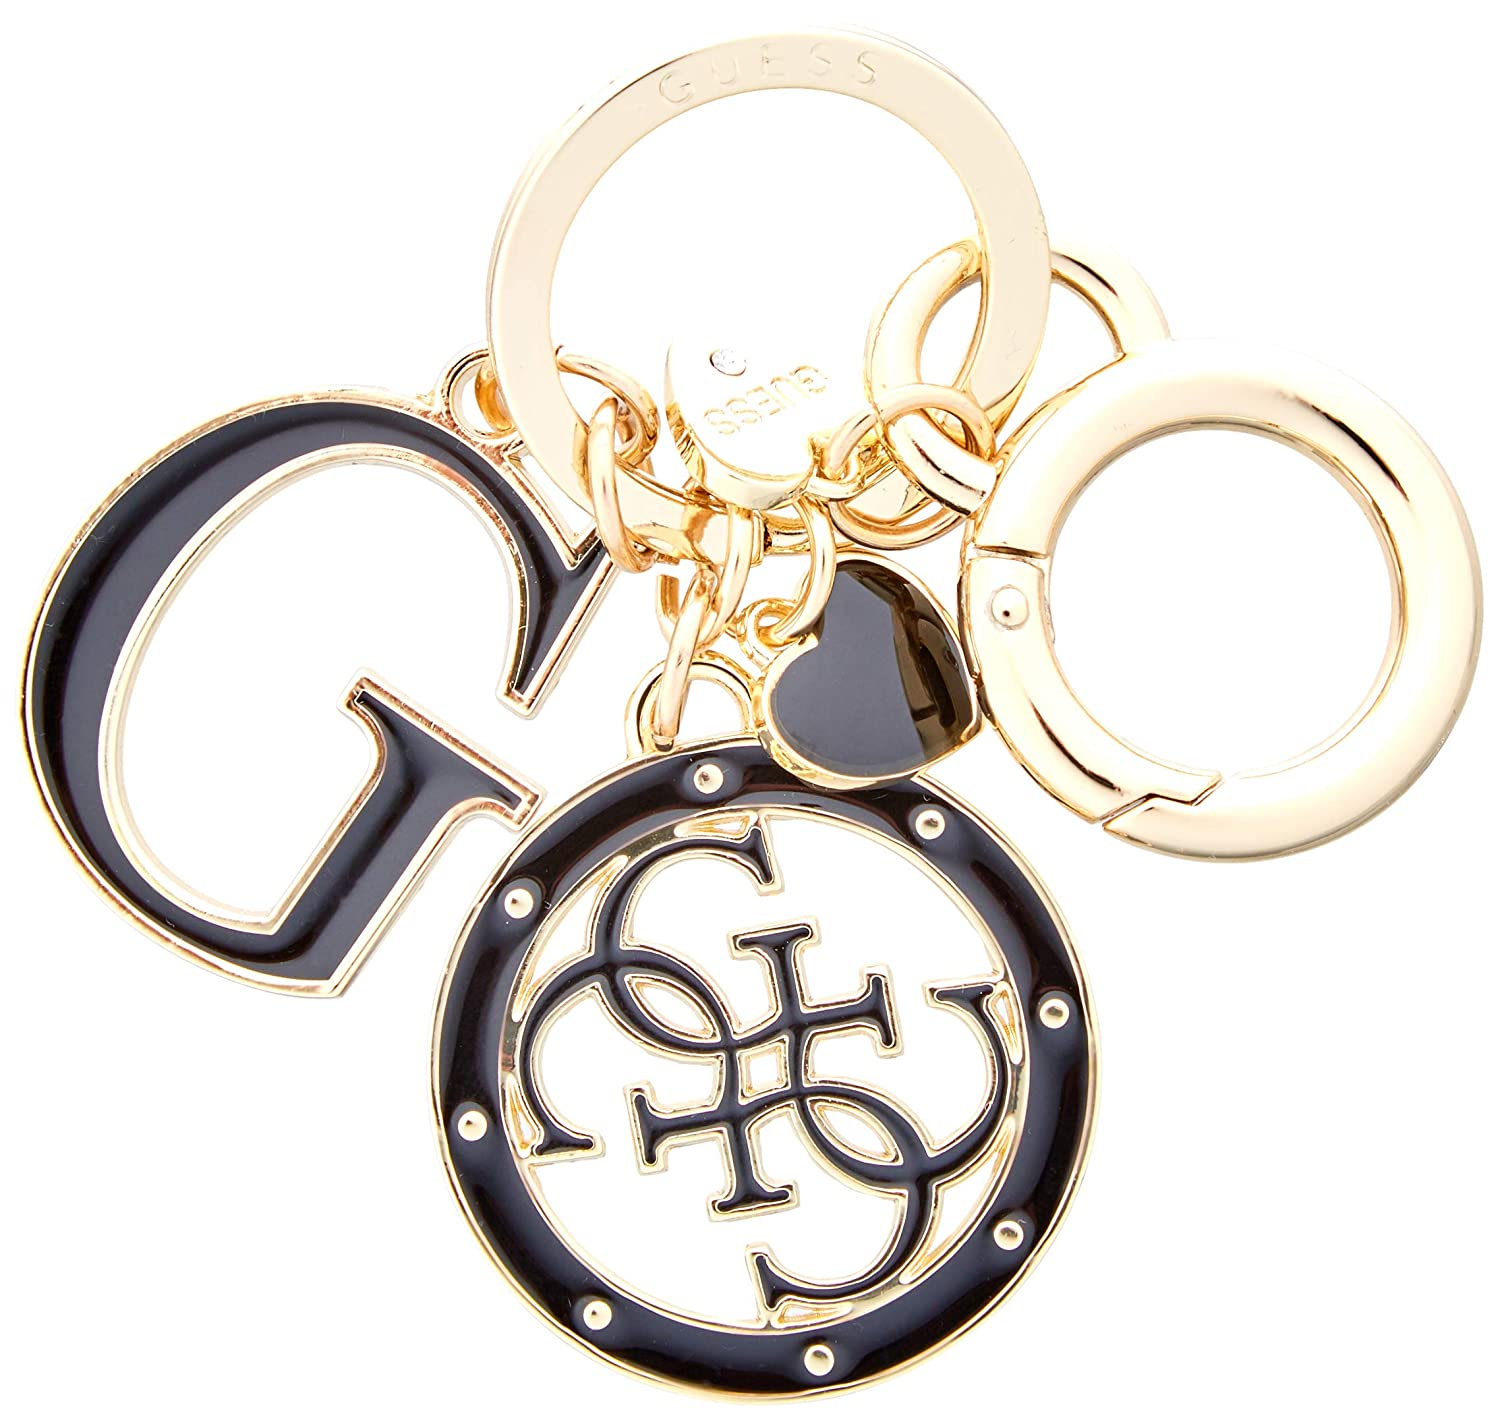 White (Black) Guess Women's Not Coordinated Keychain Portable Handbag Hanger